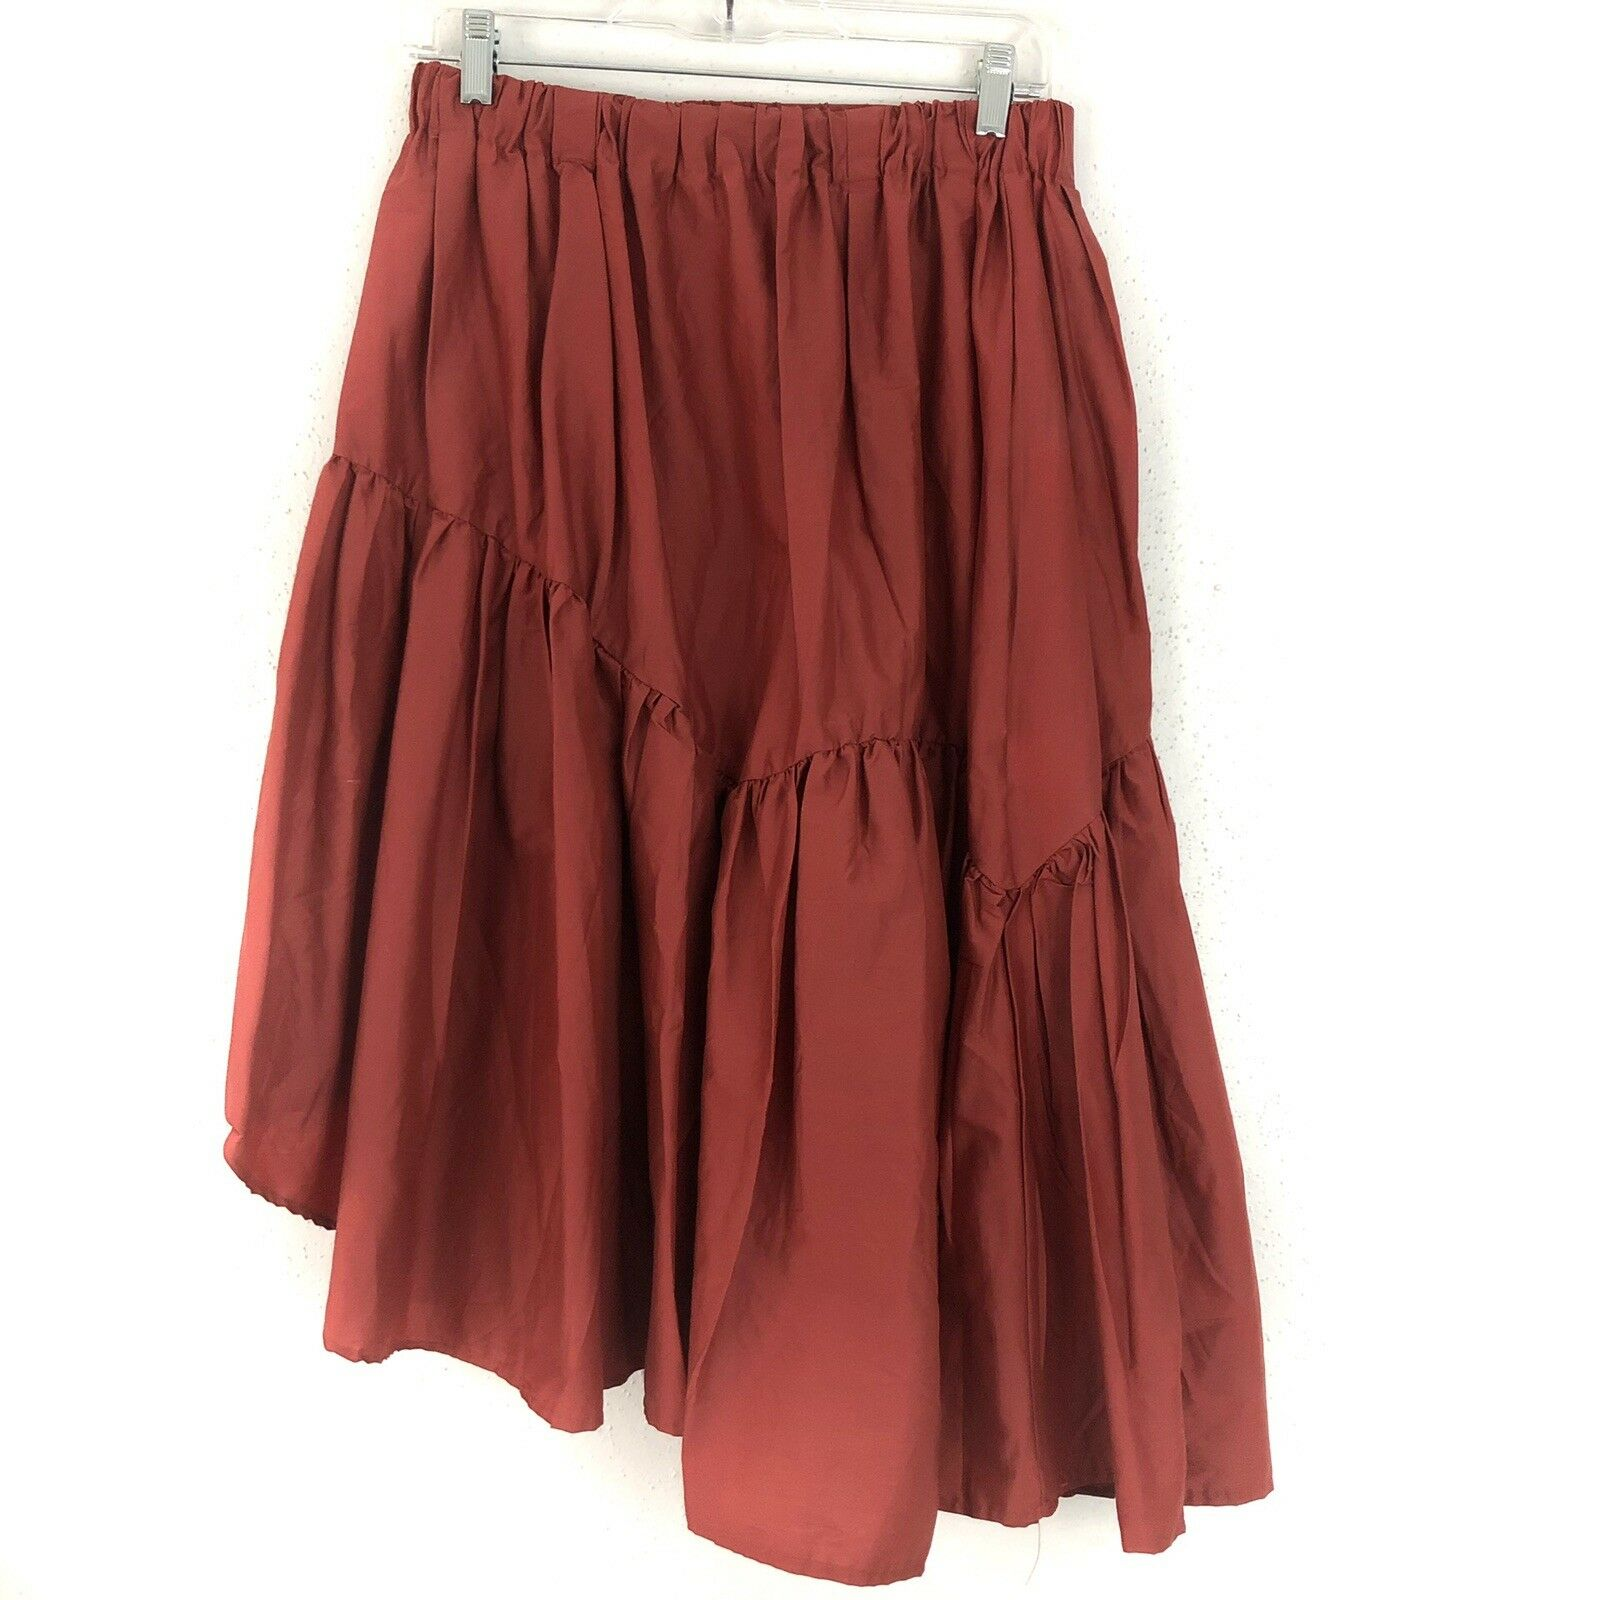 Anthropologie 5 On 7 Asymmetrical Poplin Skirt Size L Large Rust Red